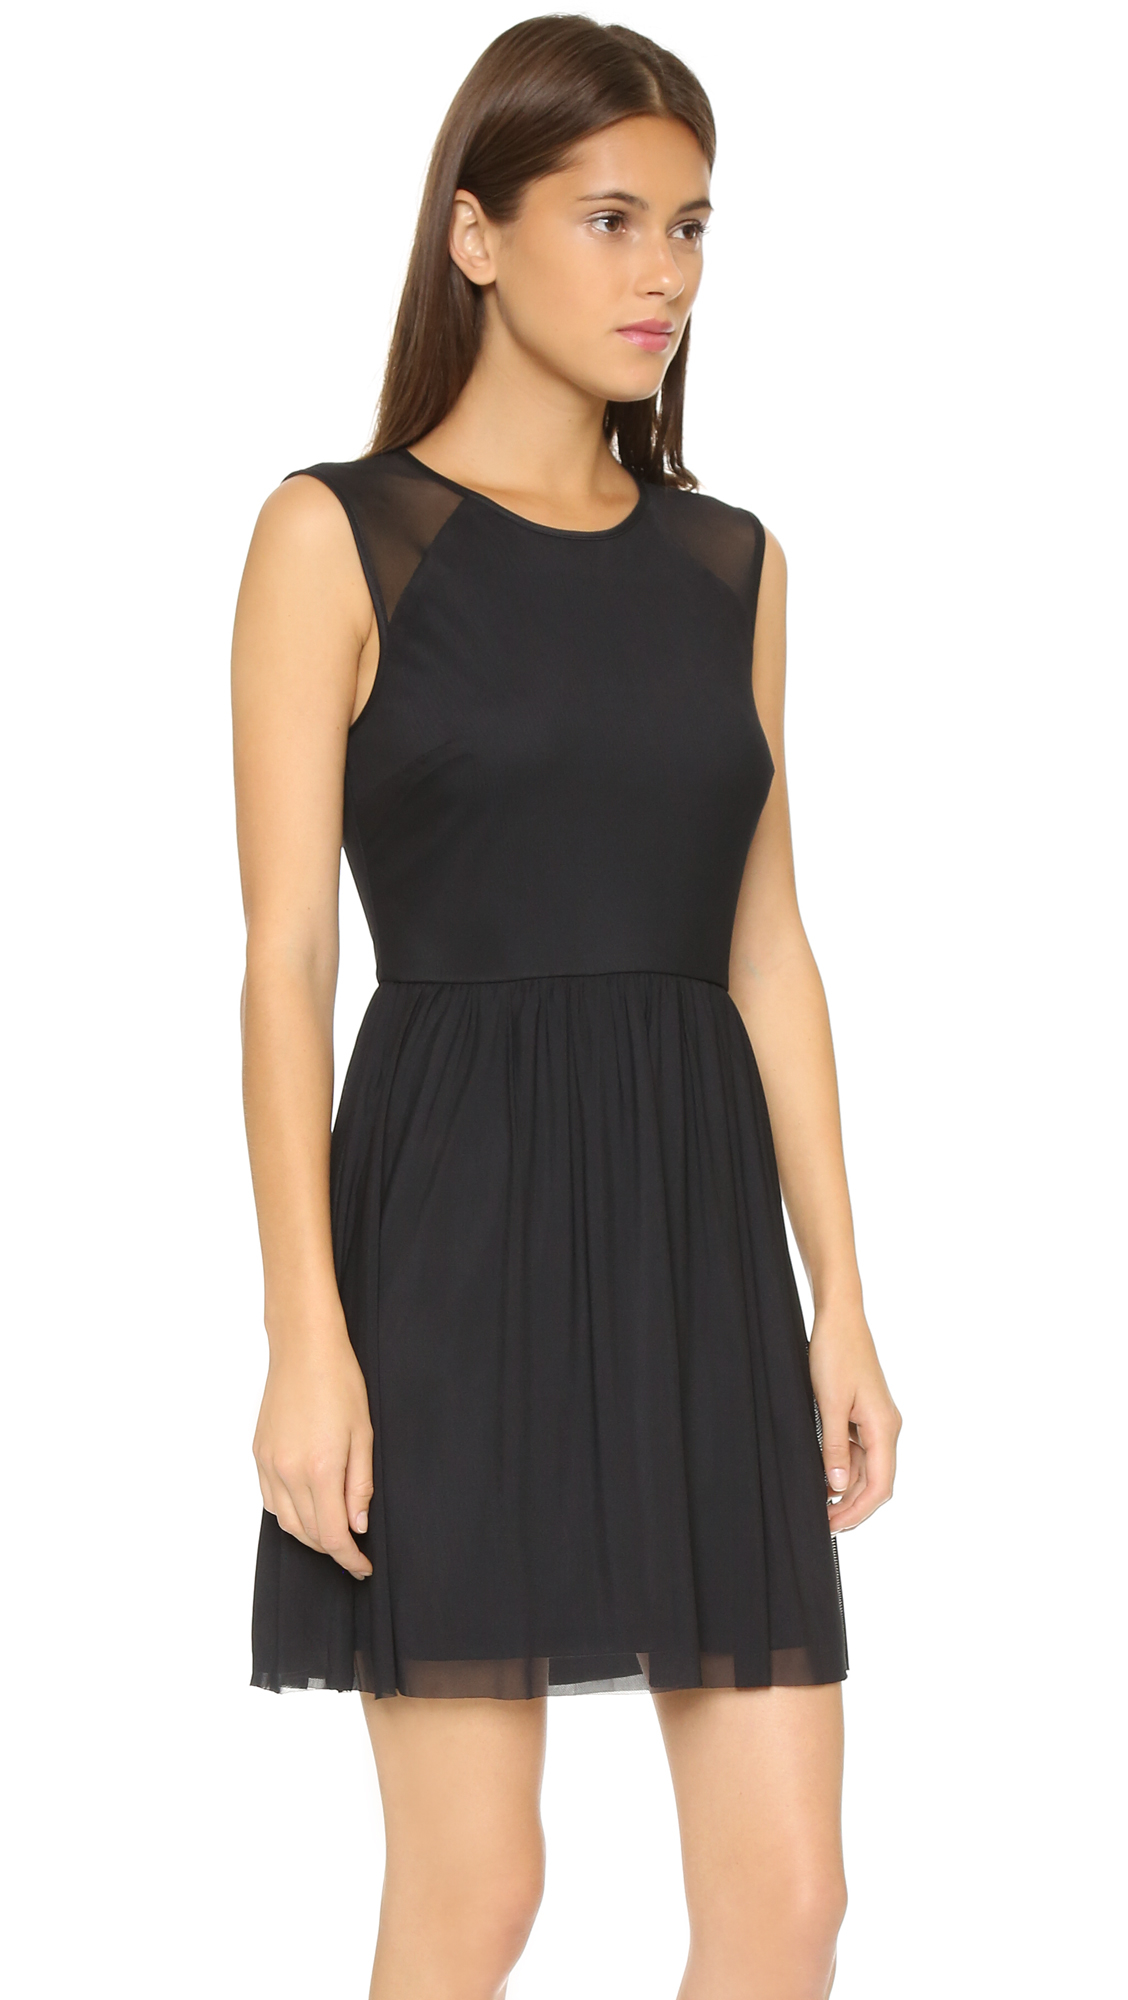 Bb dakota Jack By Eva Mesh Dress - Black in Black | Lyst